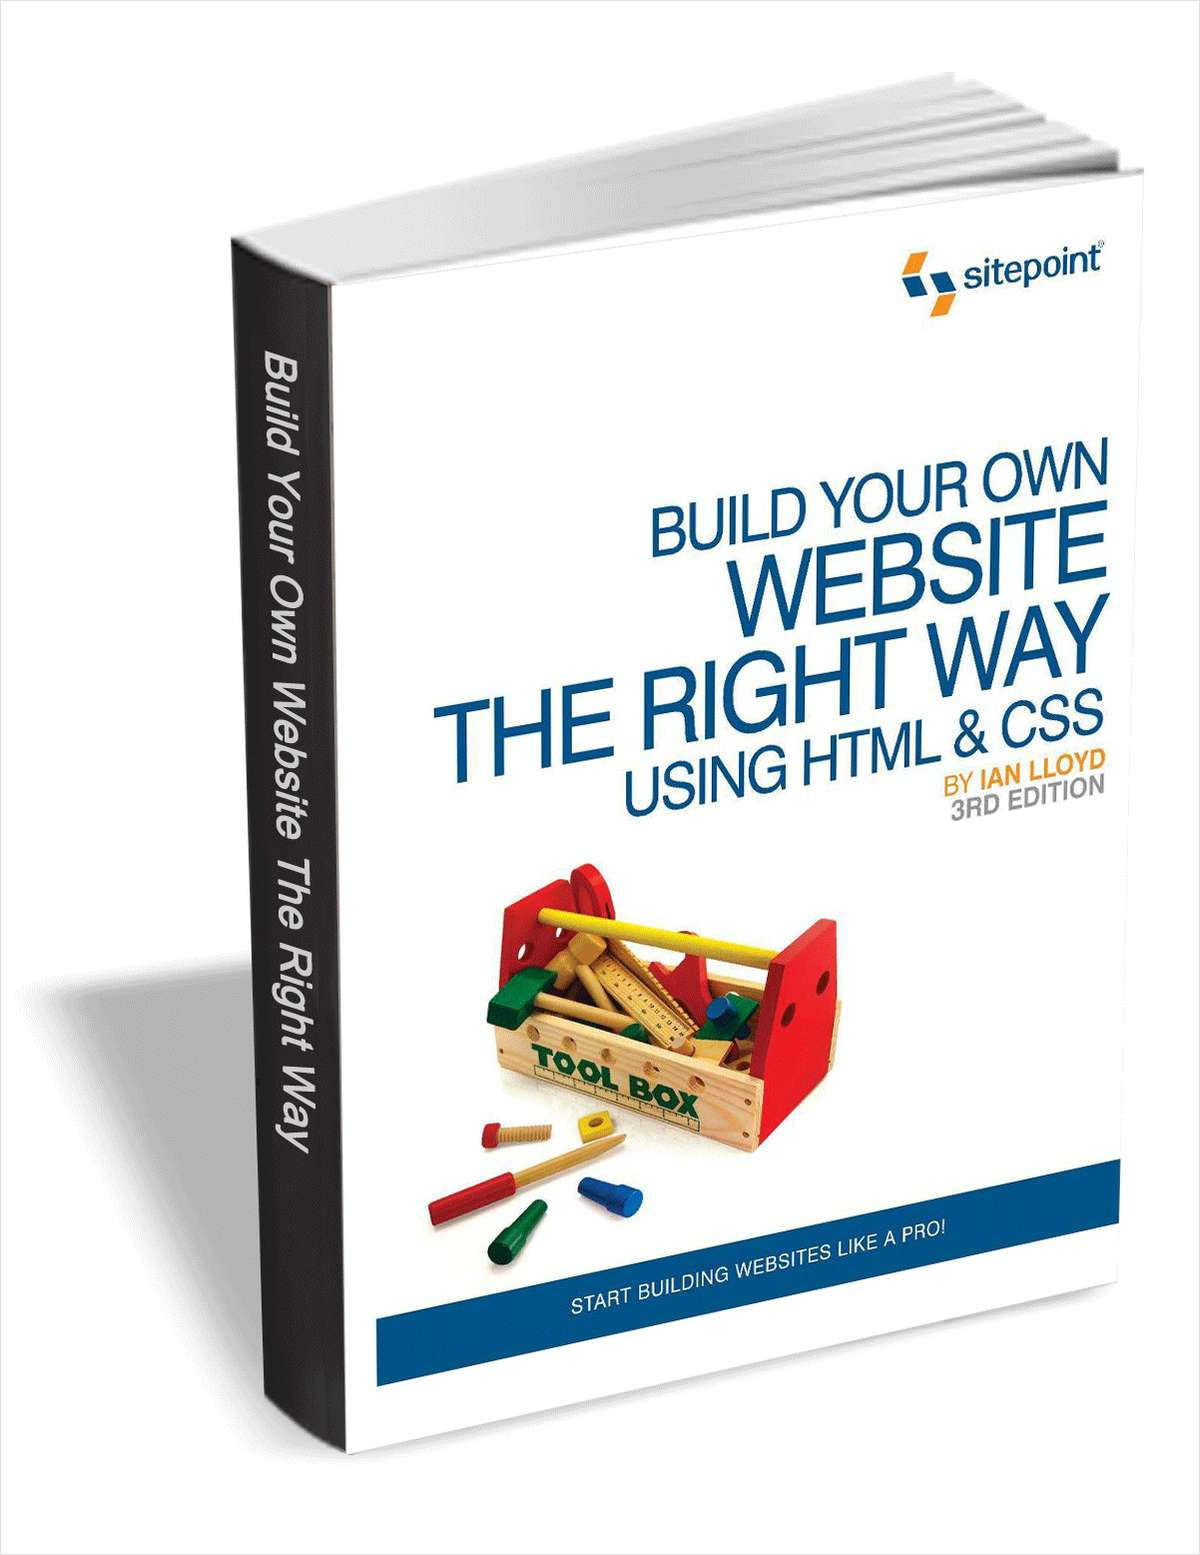 Build Your Own Website the Right Way Using HTML & CSS ($29 Value FREE For a Limited Time)